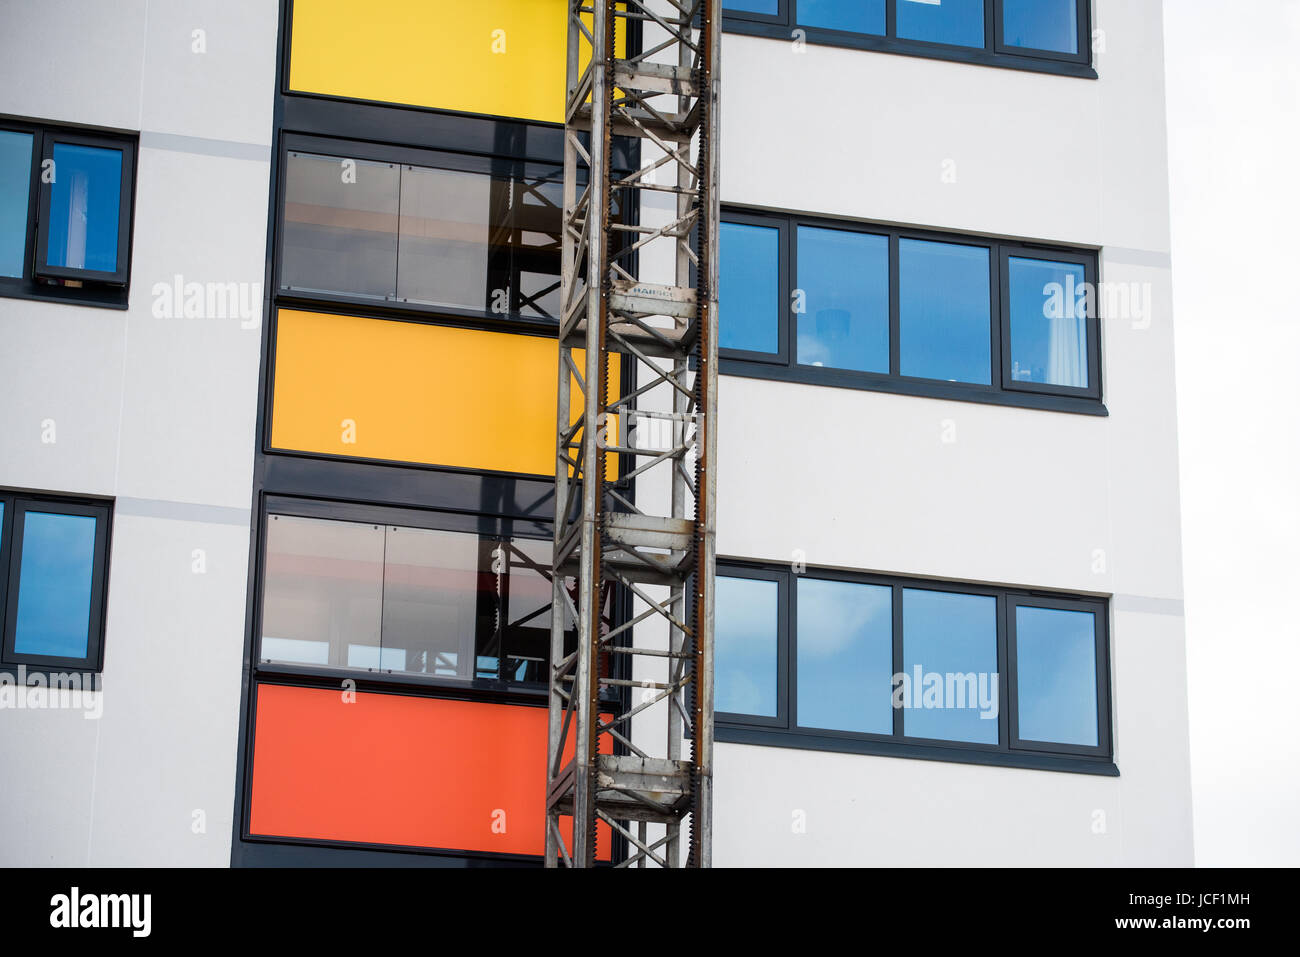 Dangerous flammable cladding panels being removed from on a tower block in Oxford after the Grenfell Tower tragedy - Stock Image